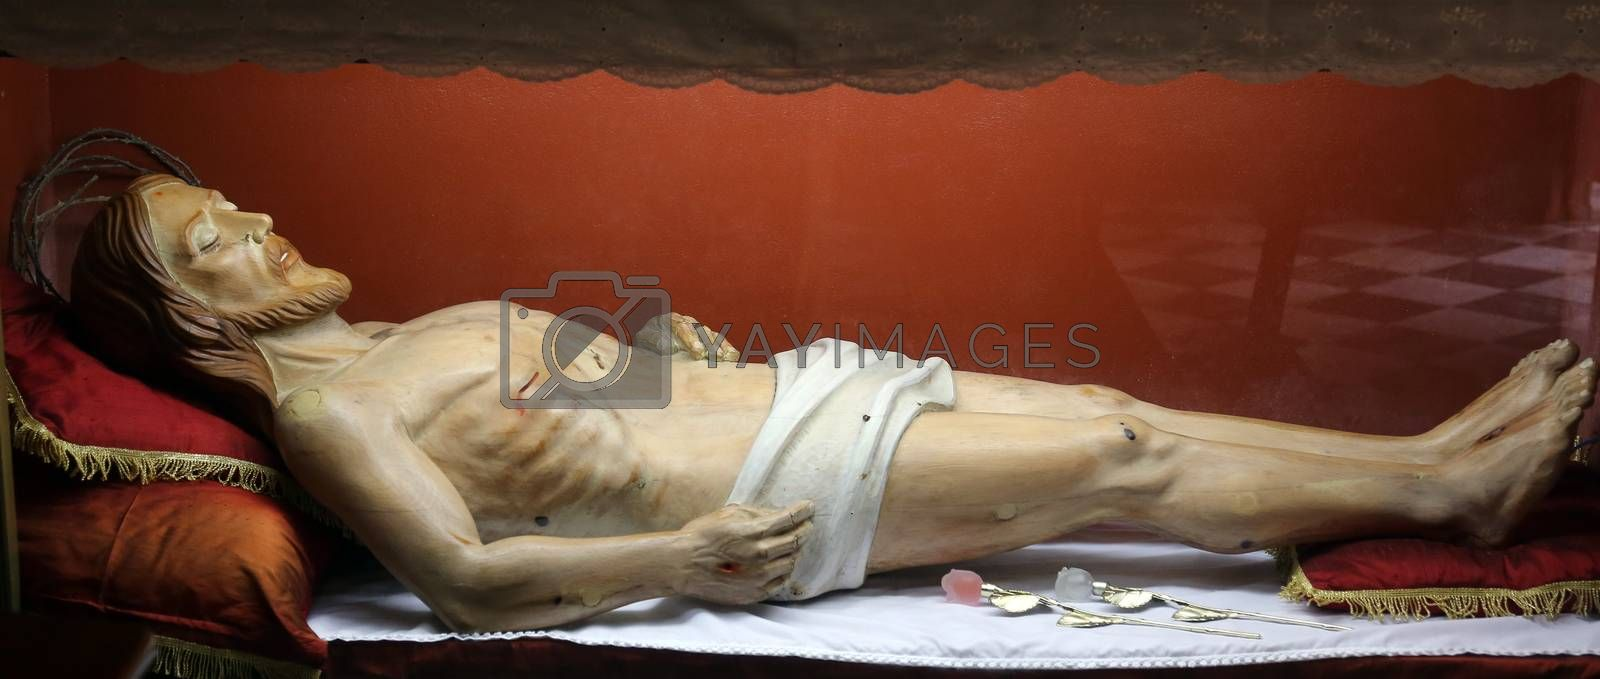 Statue of Jesus Christ in the tomb in the Church of the Holy Sacrament in Portoferraio, Elba, Italy on May 03, 2014 Portoferraio, Italy